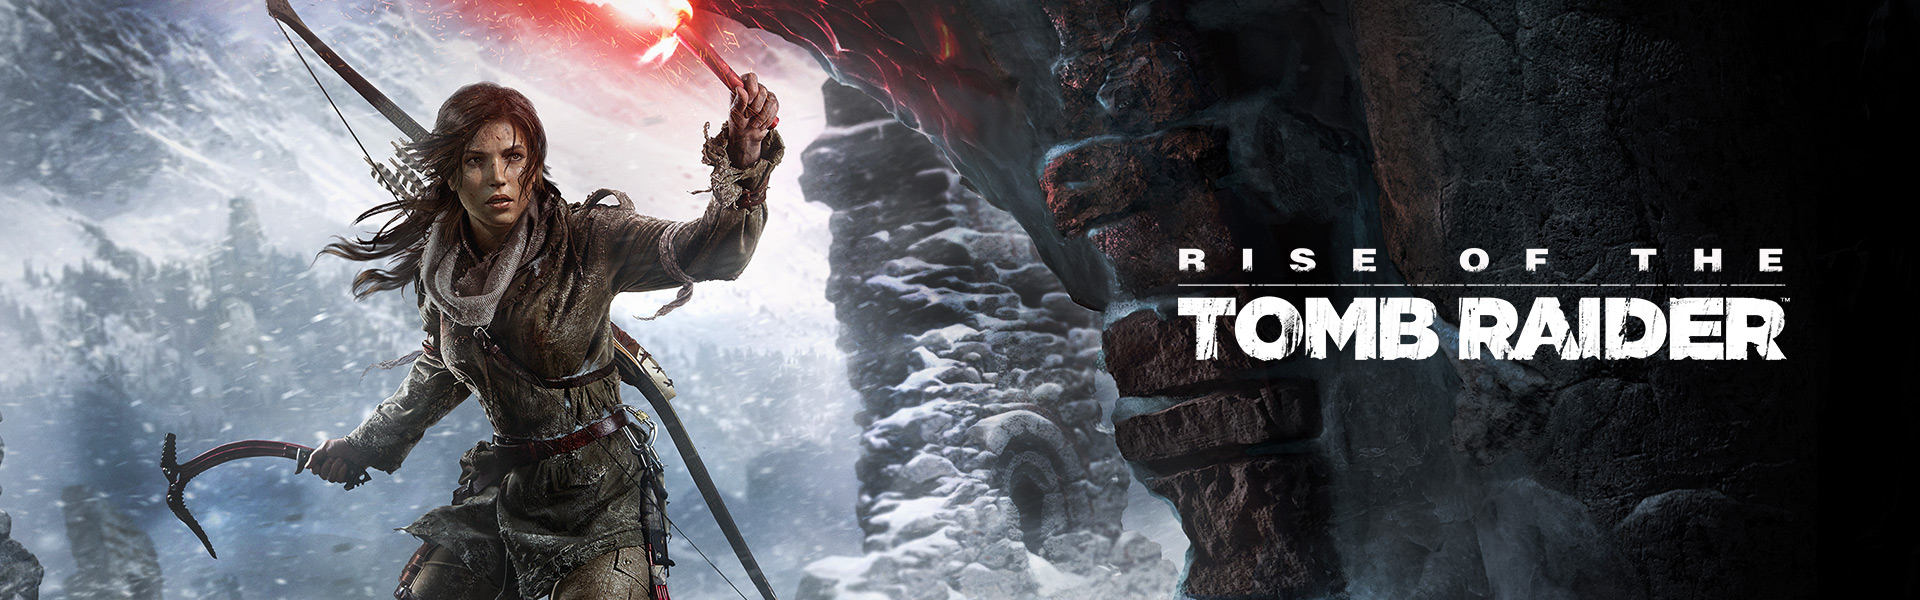 Rise of the Tomb Raider Hero, front view of Lara Croft entering a frozen tomb wielding a flare and ice axe